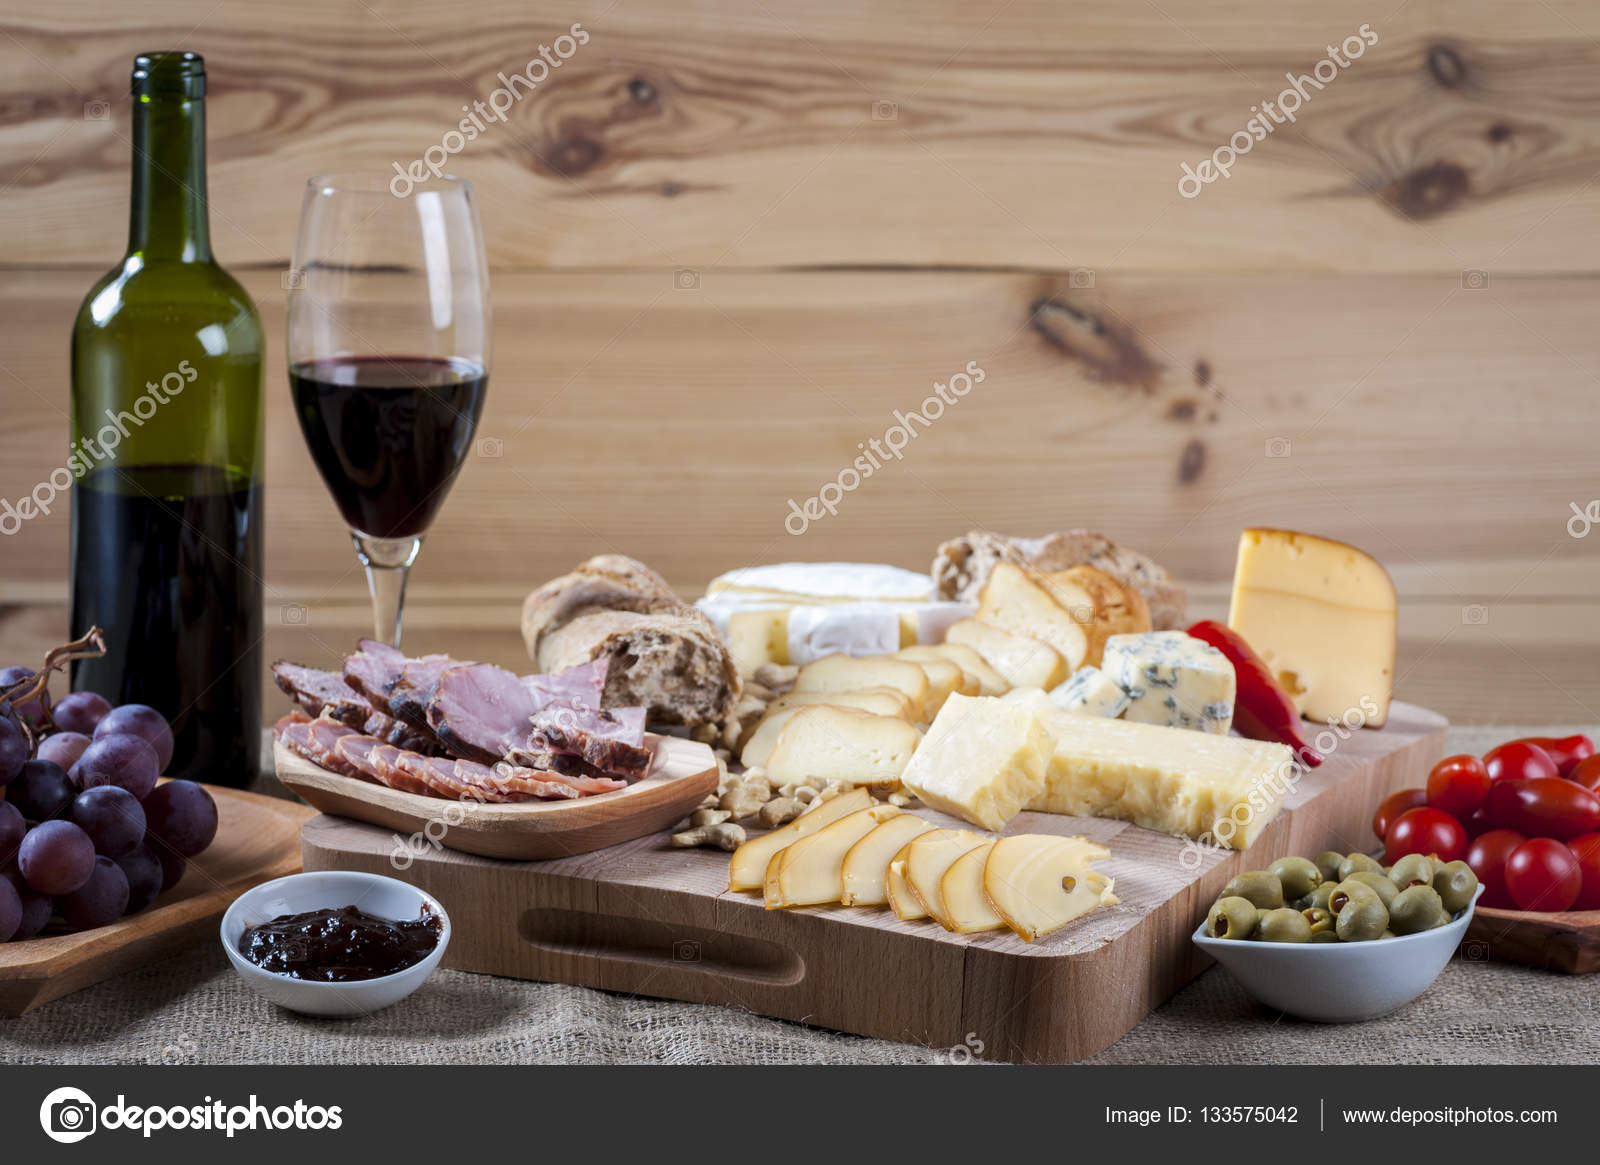 Cheese Platter And Wine A Light Snack Stock Photo C Rlat28 133575042